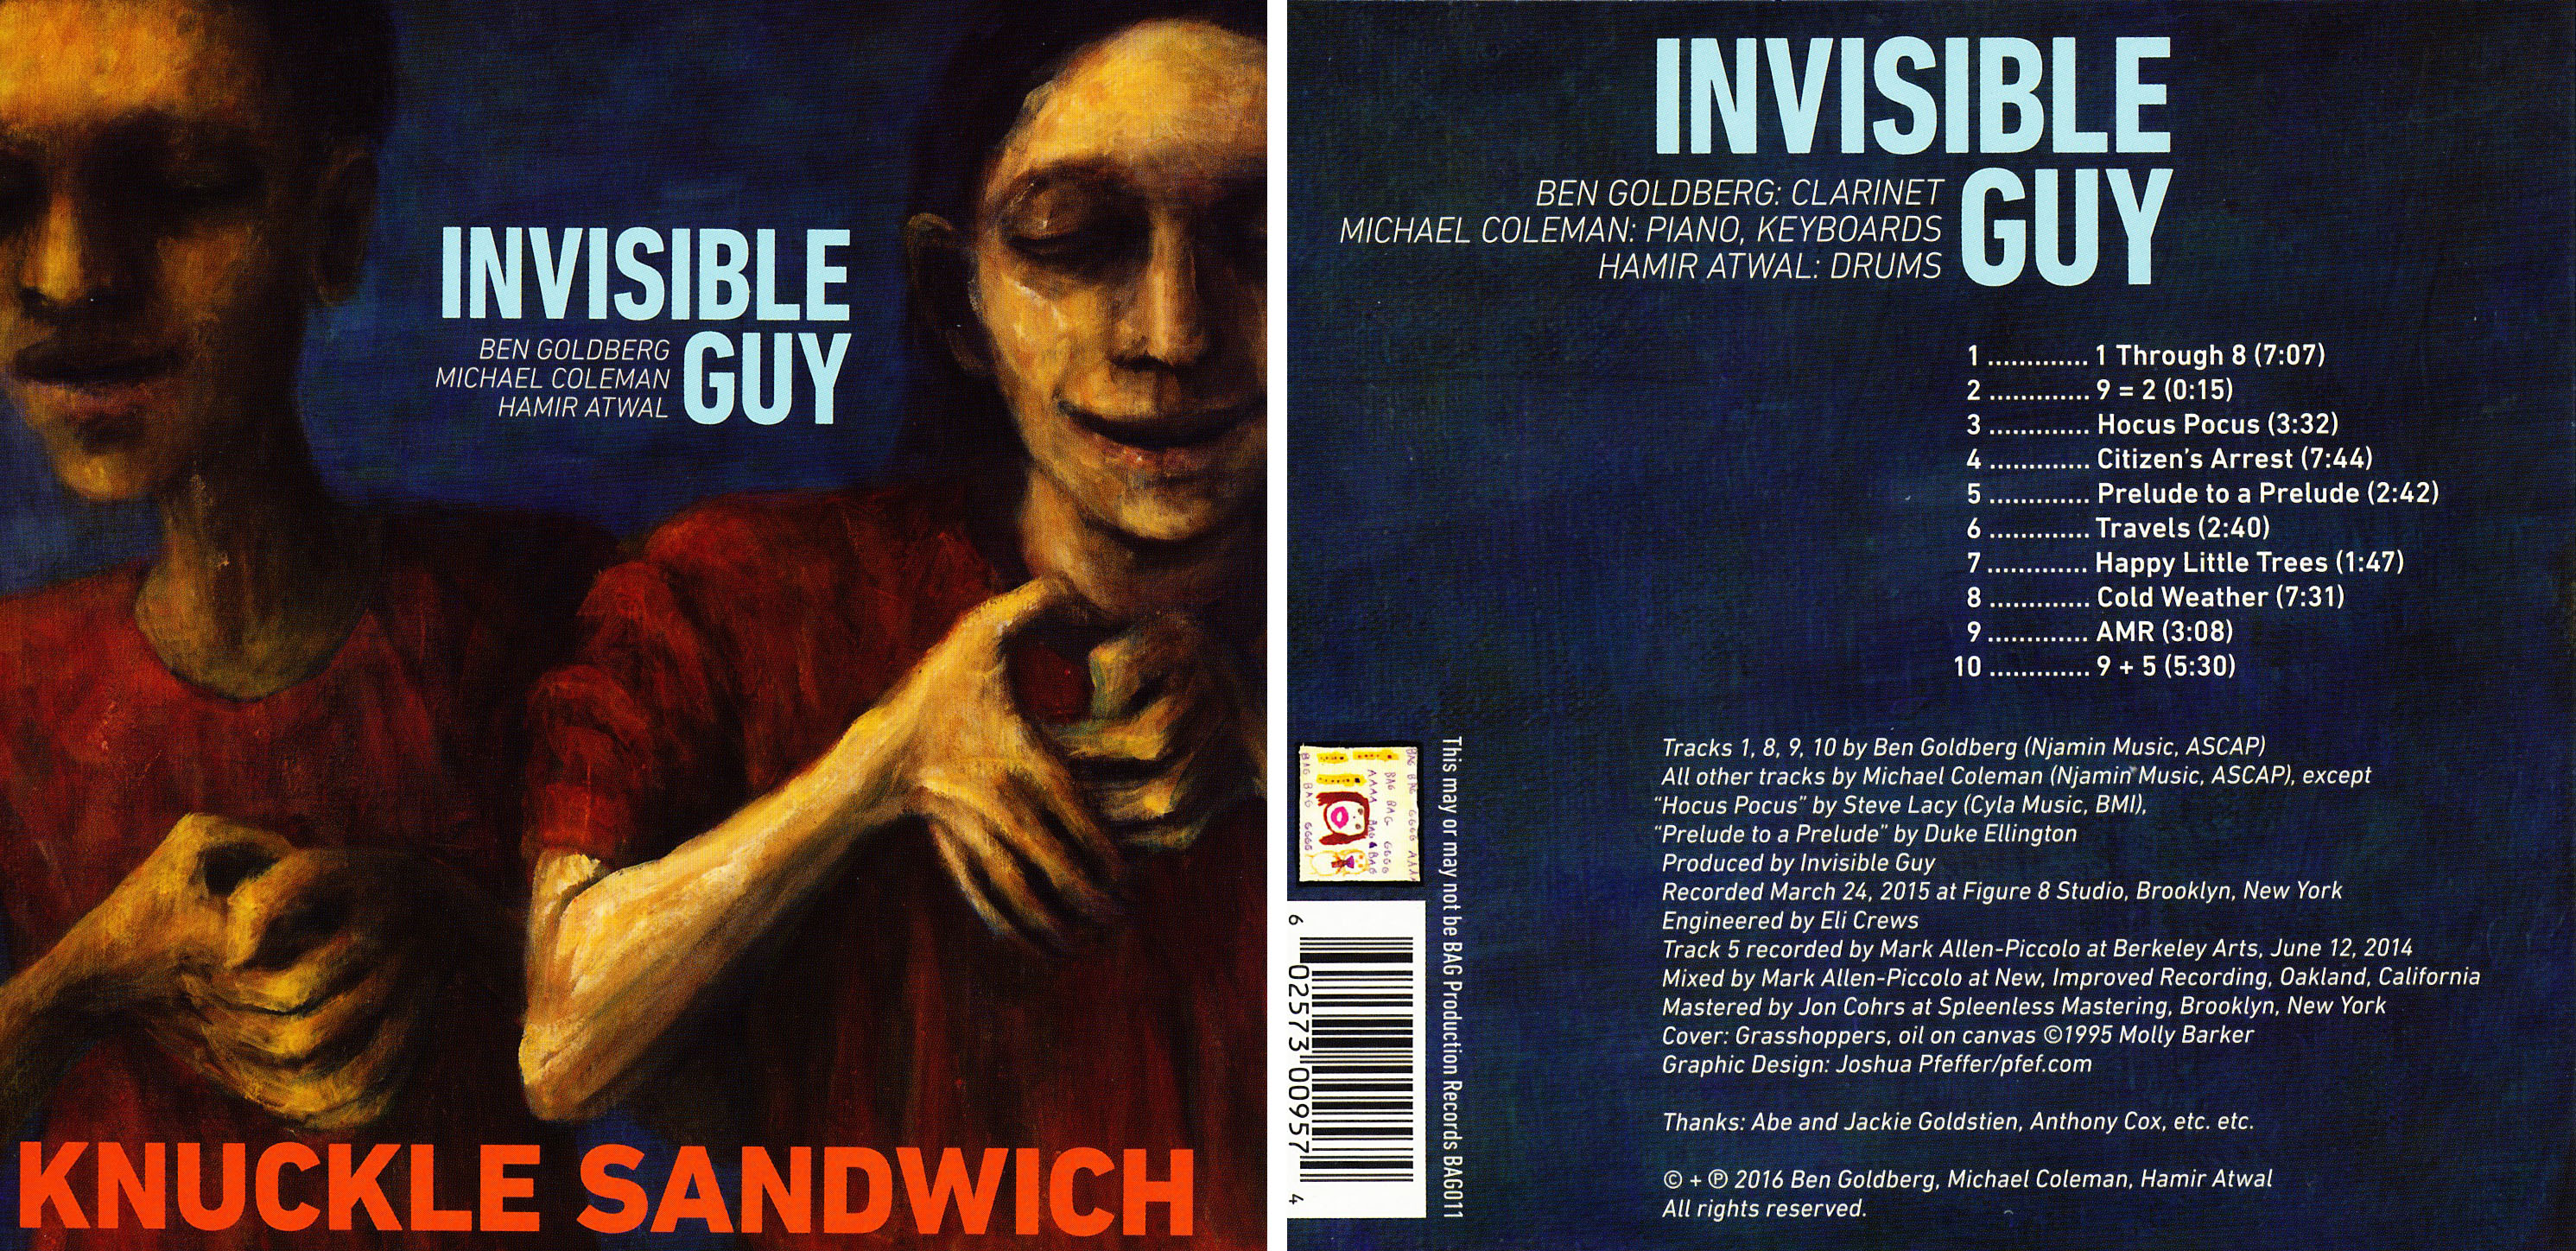 Ben Goldberg/Michael Coleman/Hamir Atwal | Invisible Guy